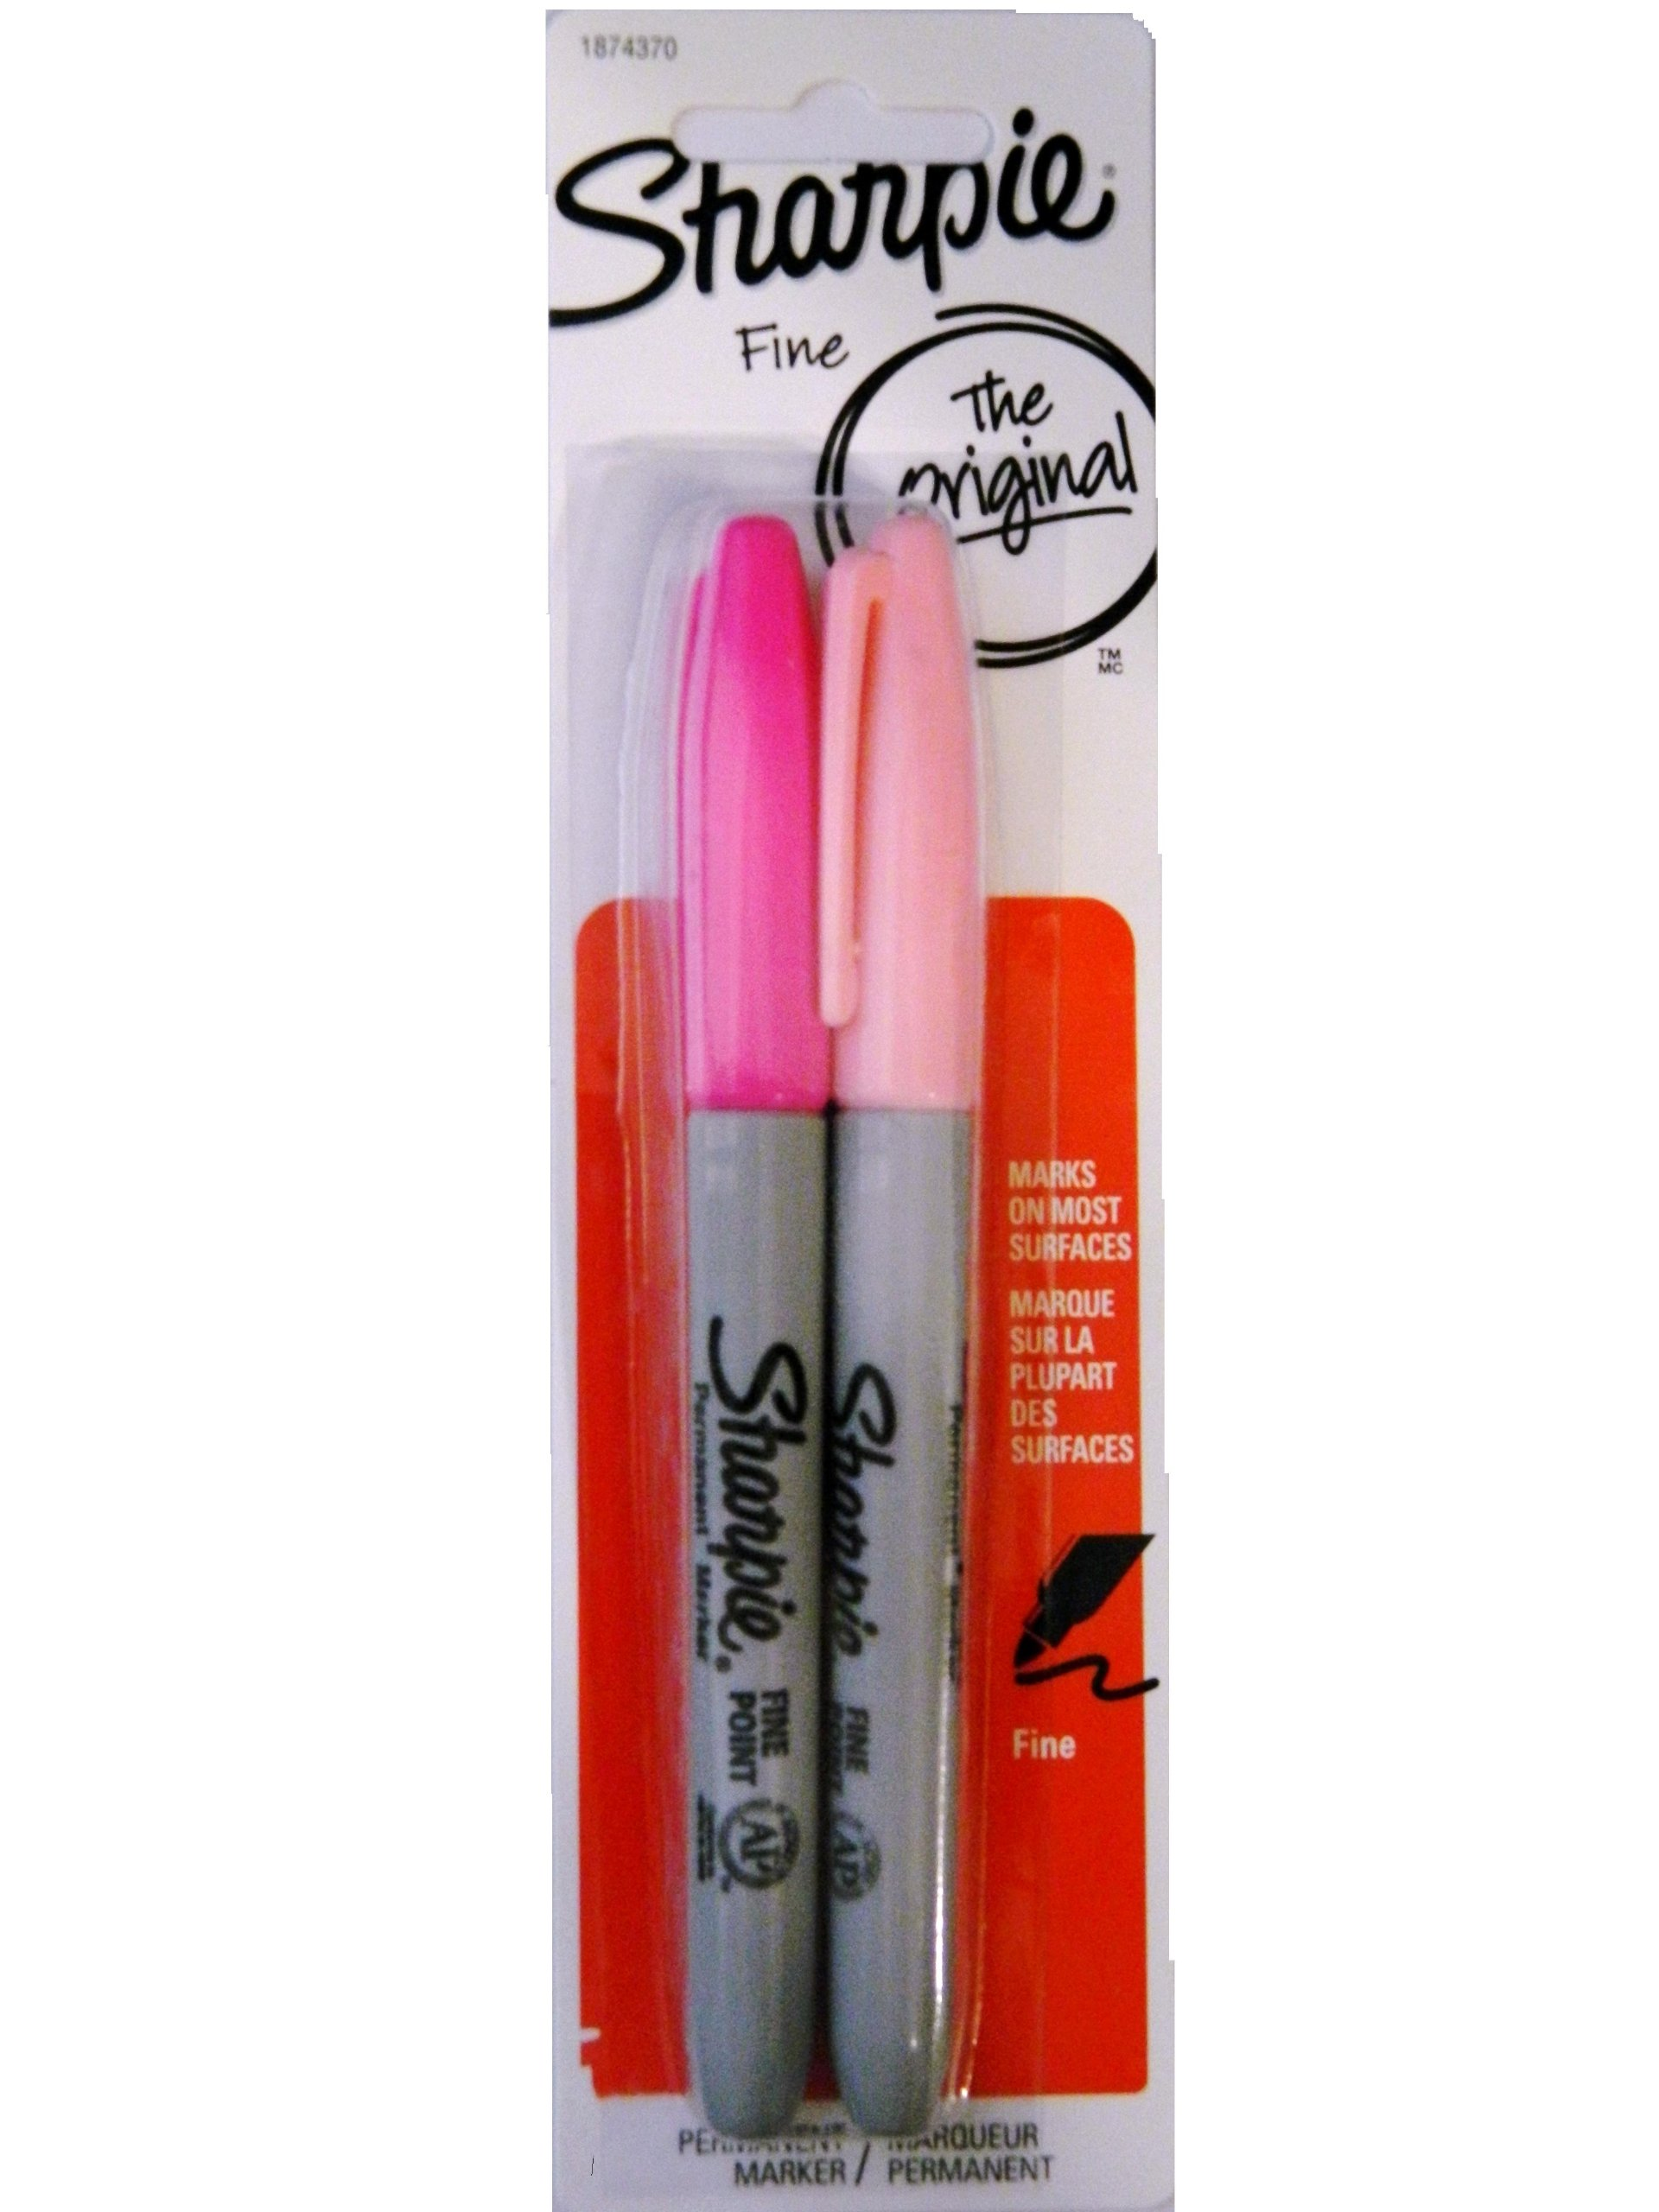 Sharpie Pink Fine Markers (2 Pack)